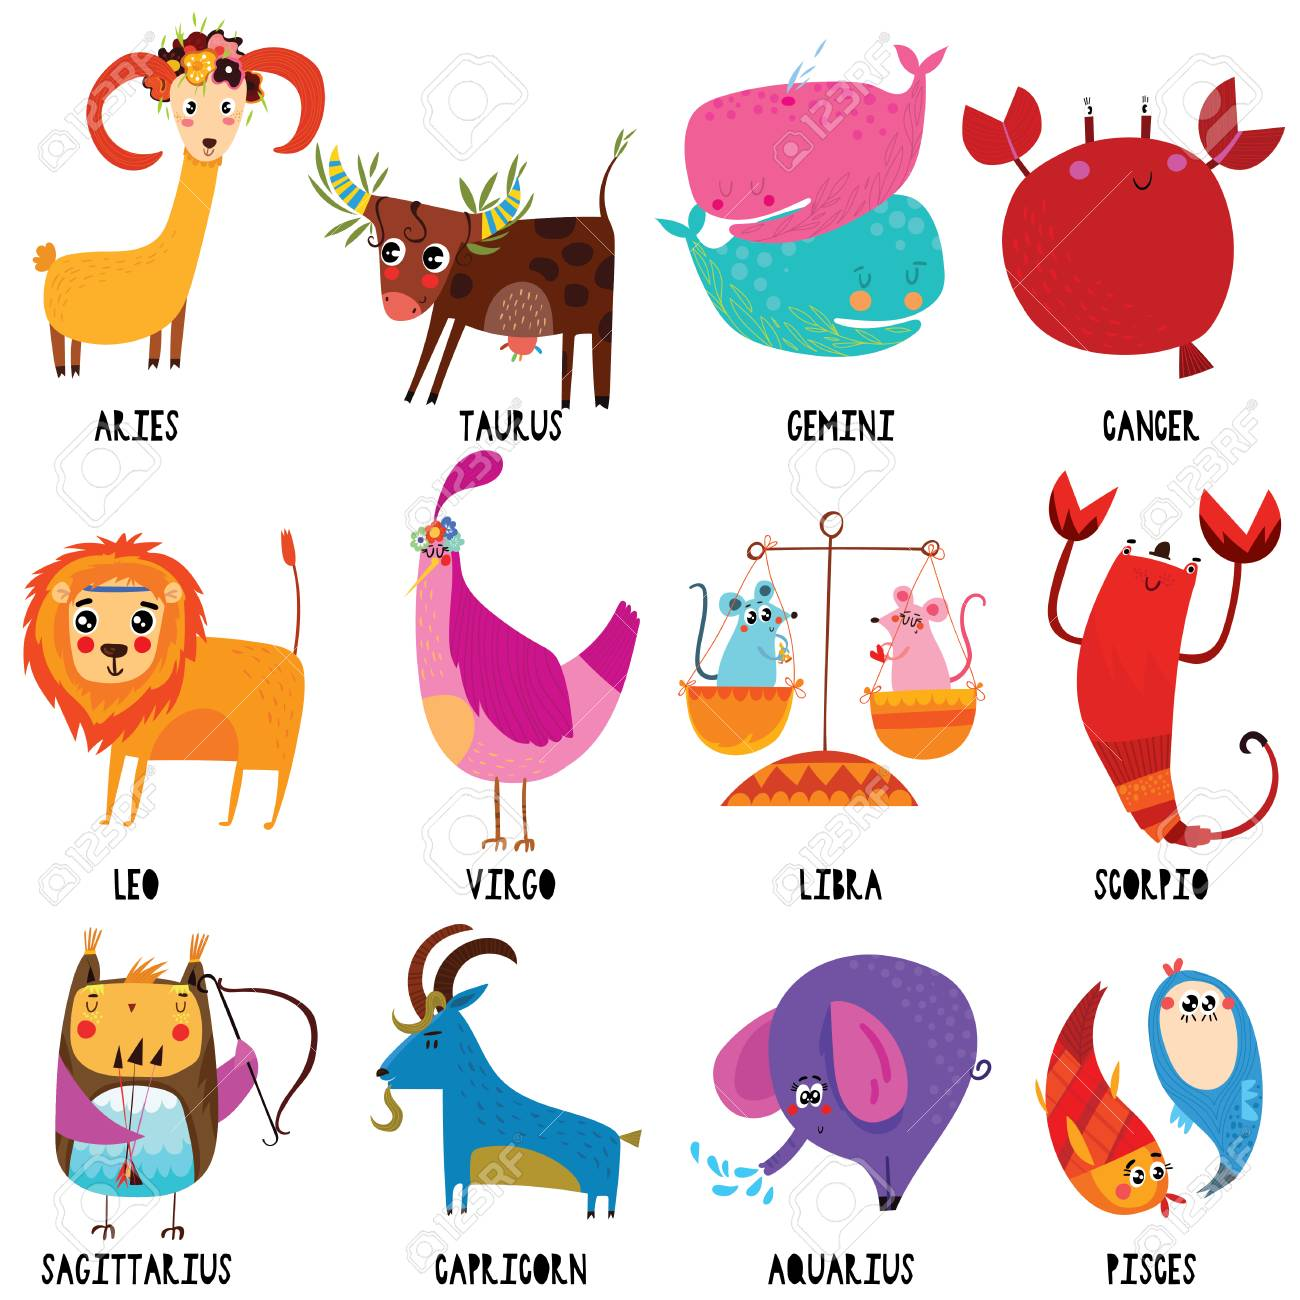 What dream about zodiac signs means on ecological houses, astrology houses, cultural houses, human houses, urban houses, red houses, vertical houses, top 10 houses, family houses, energy houses, mystical houses,